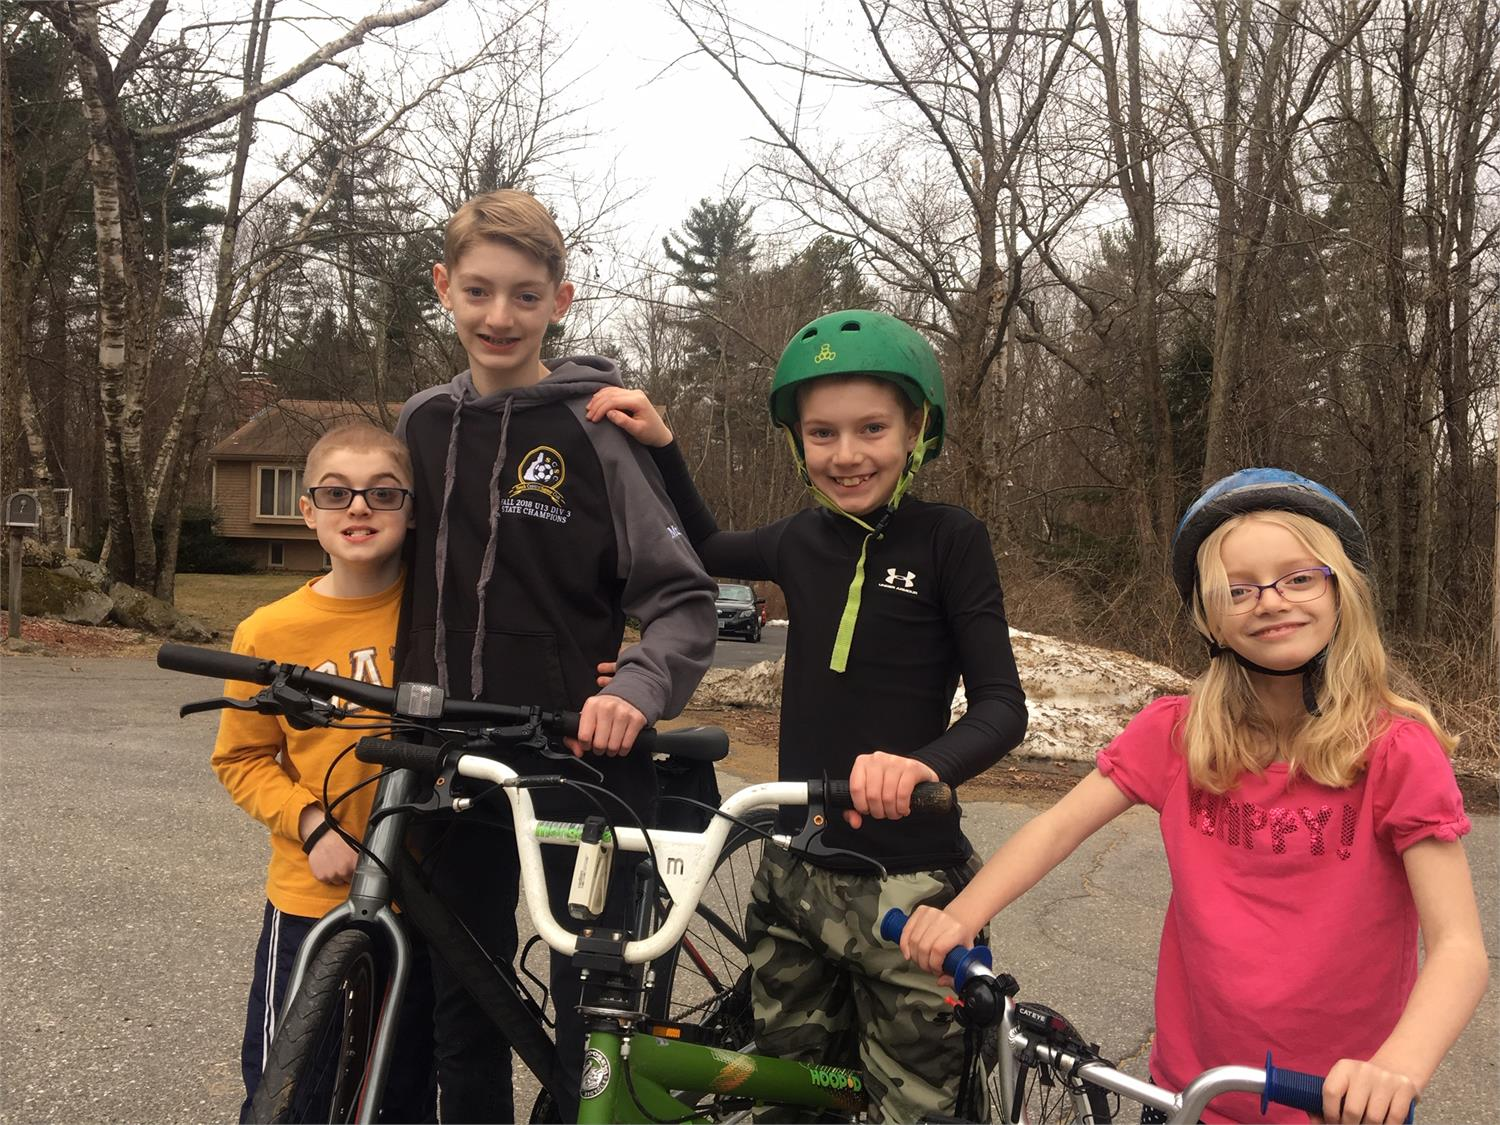 Siblings Connor, Liam, Declan, and Keely getting excited for JettRide Jr.!